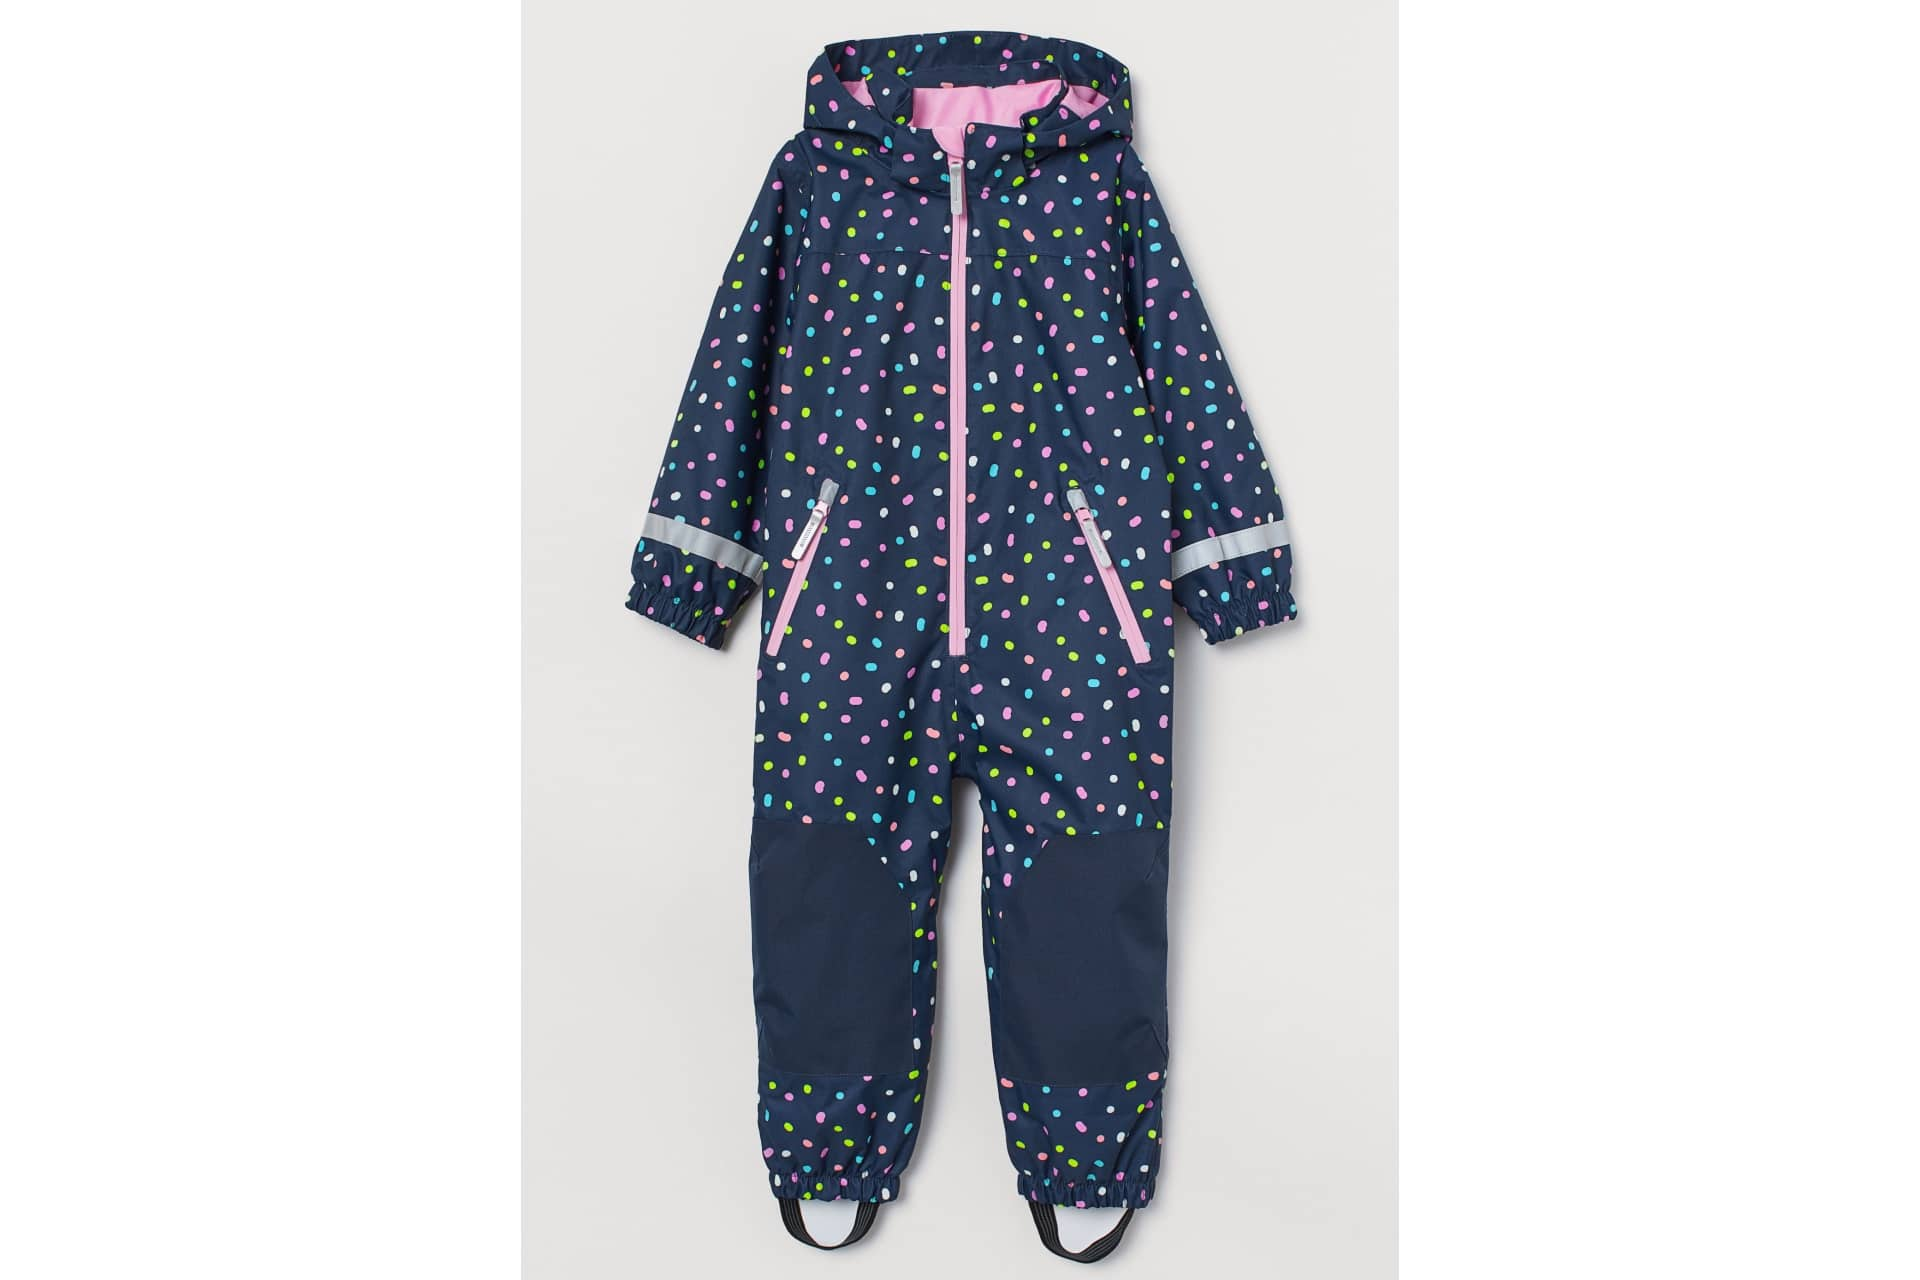 blue and pink polkadot one-piece rain suit